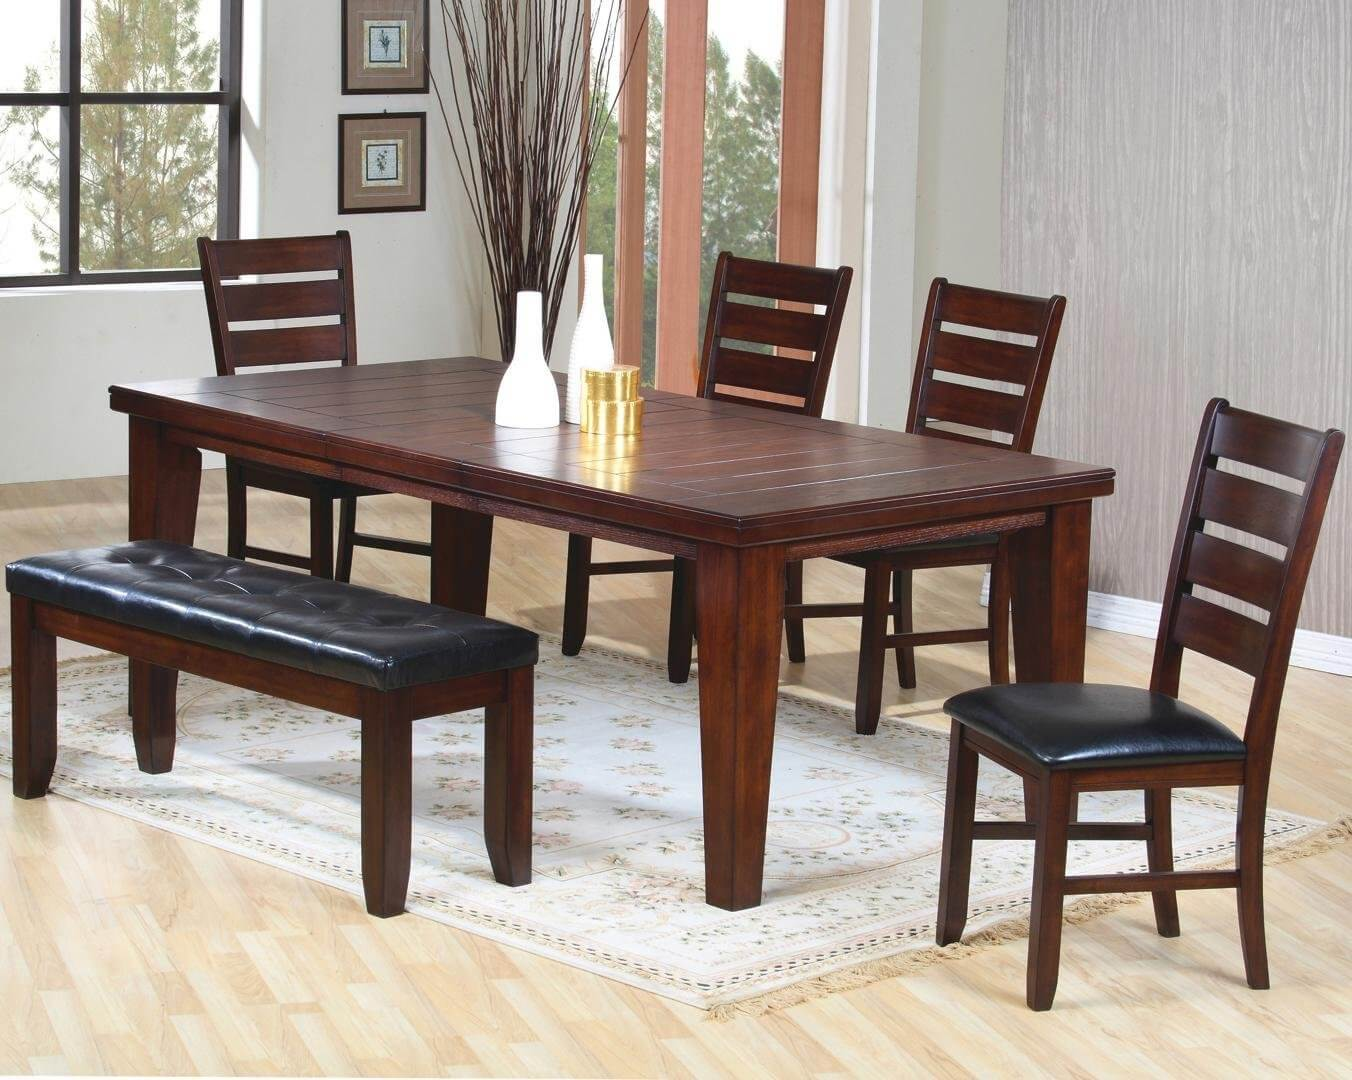 Solid wood six piece dining set with cushioned bench the finish is dark oak wood